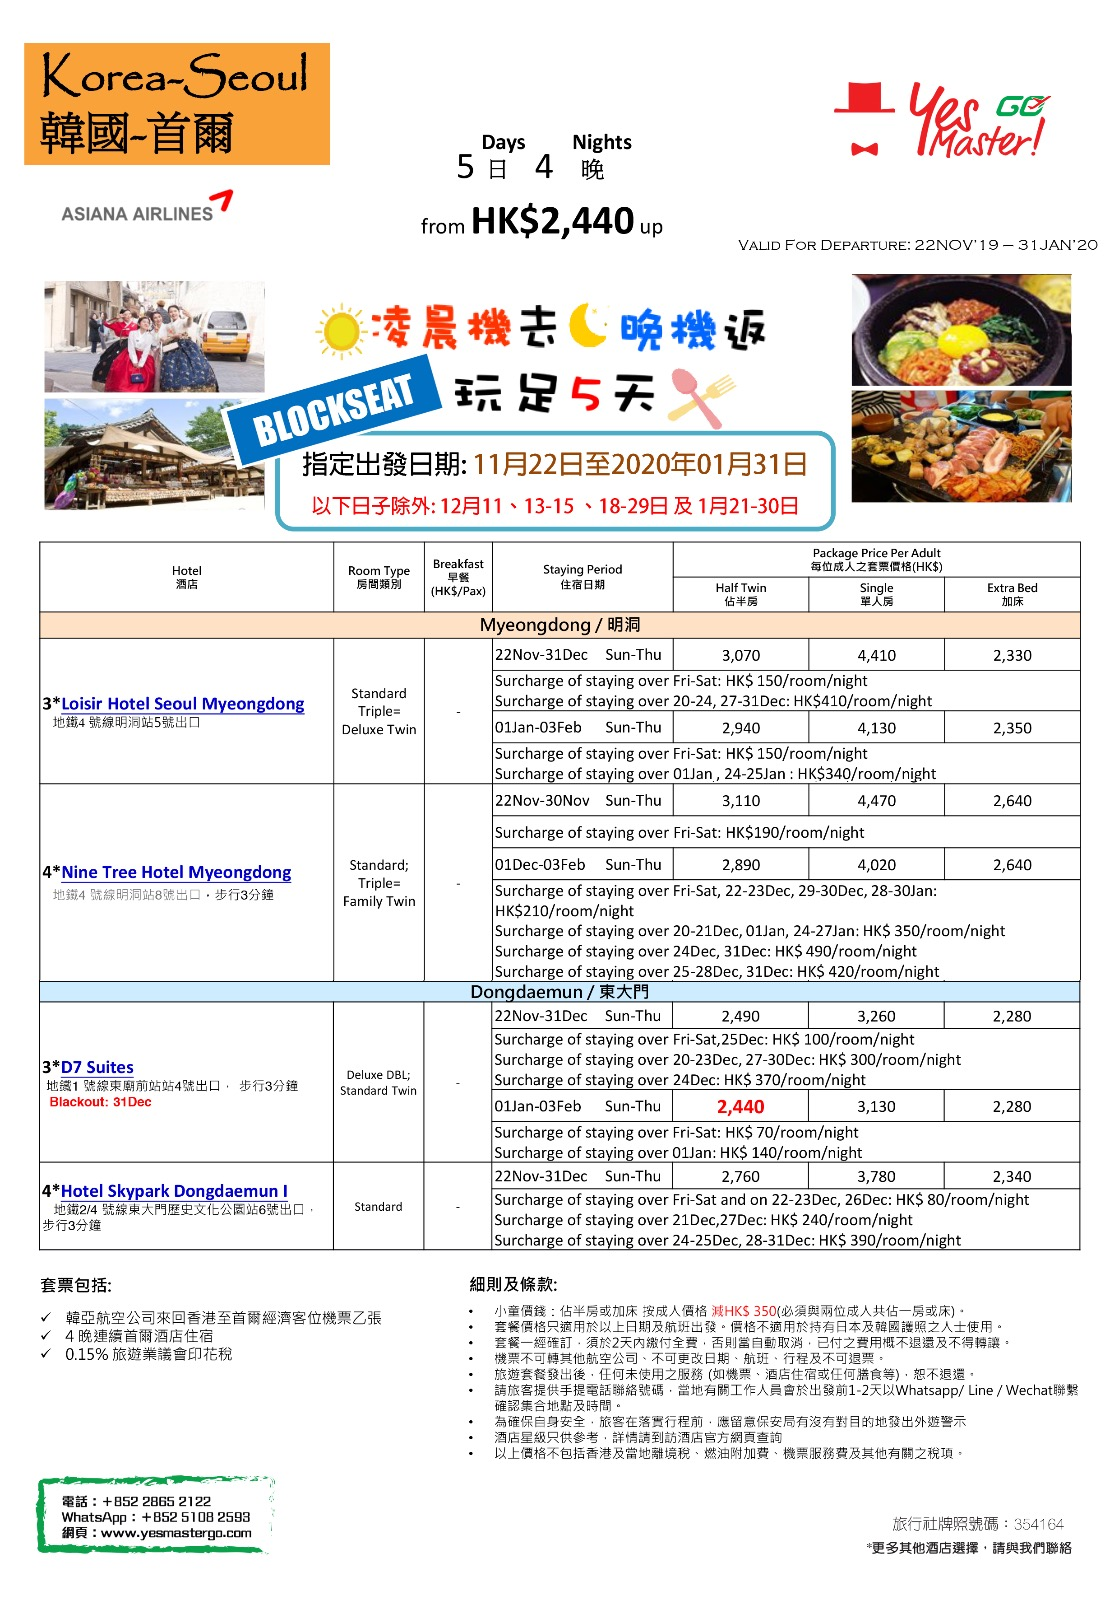 Korea - Seoul 5 Days 4 Nights